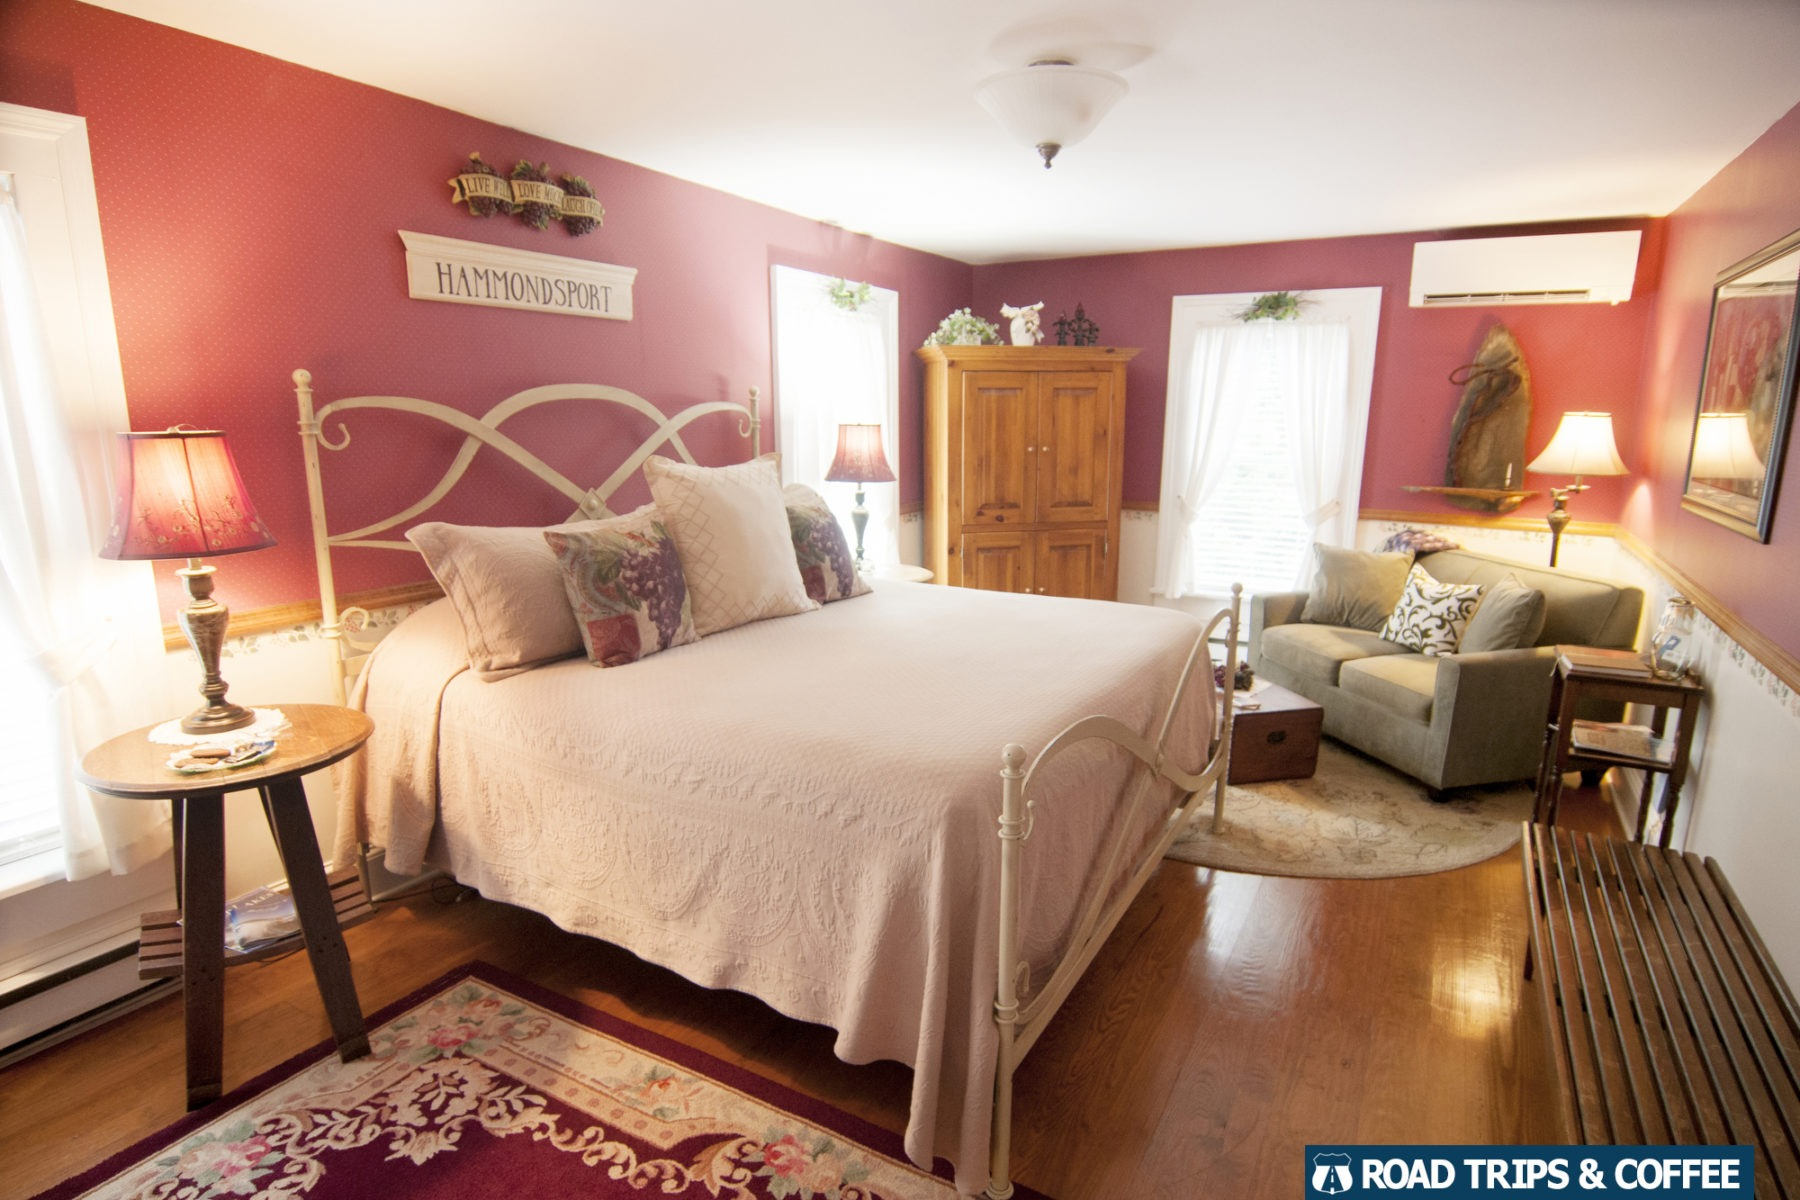 A gorgeous room at the Blushing Rose Bed & Breakfast in Hammondsport, New York